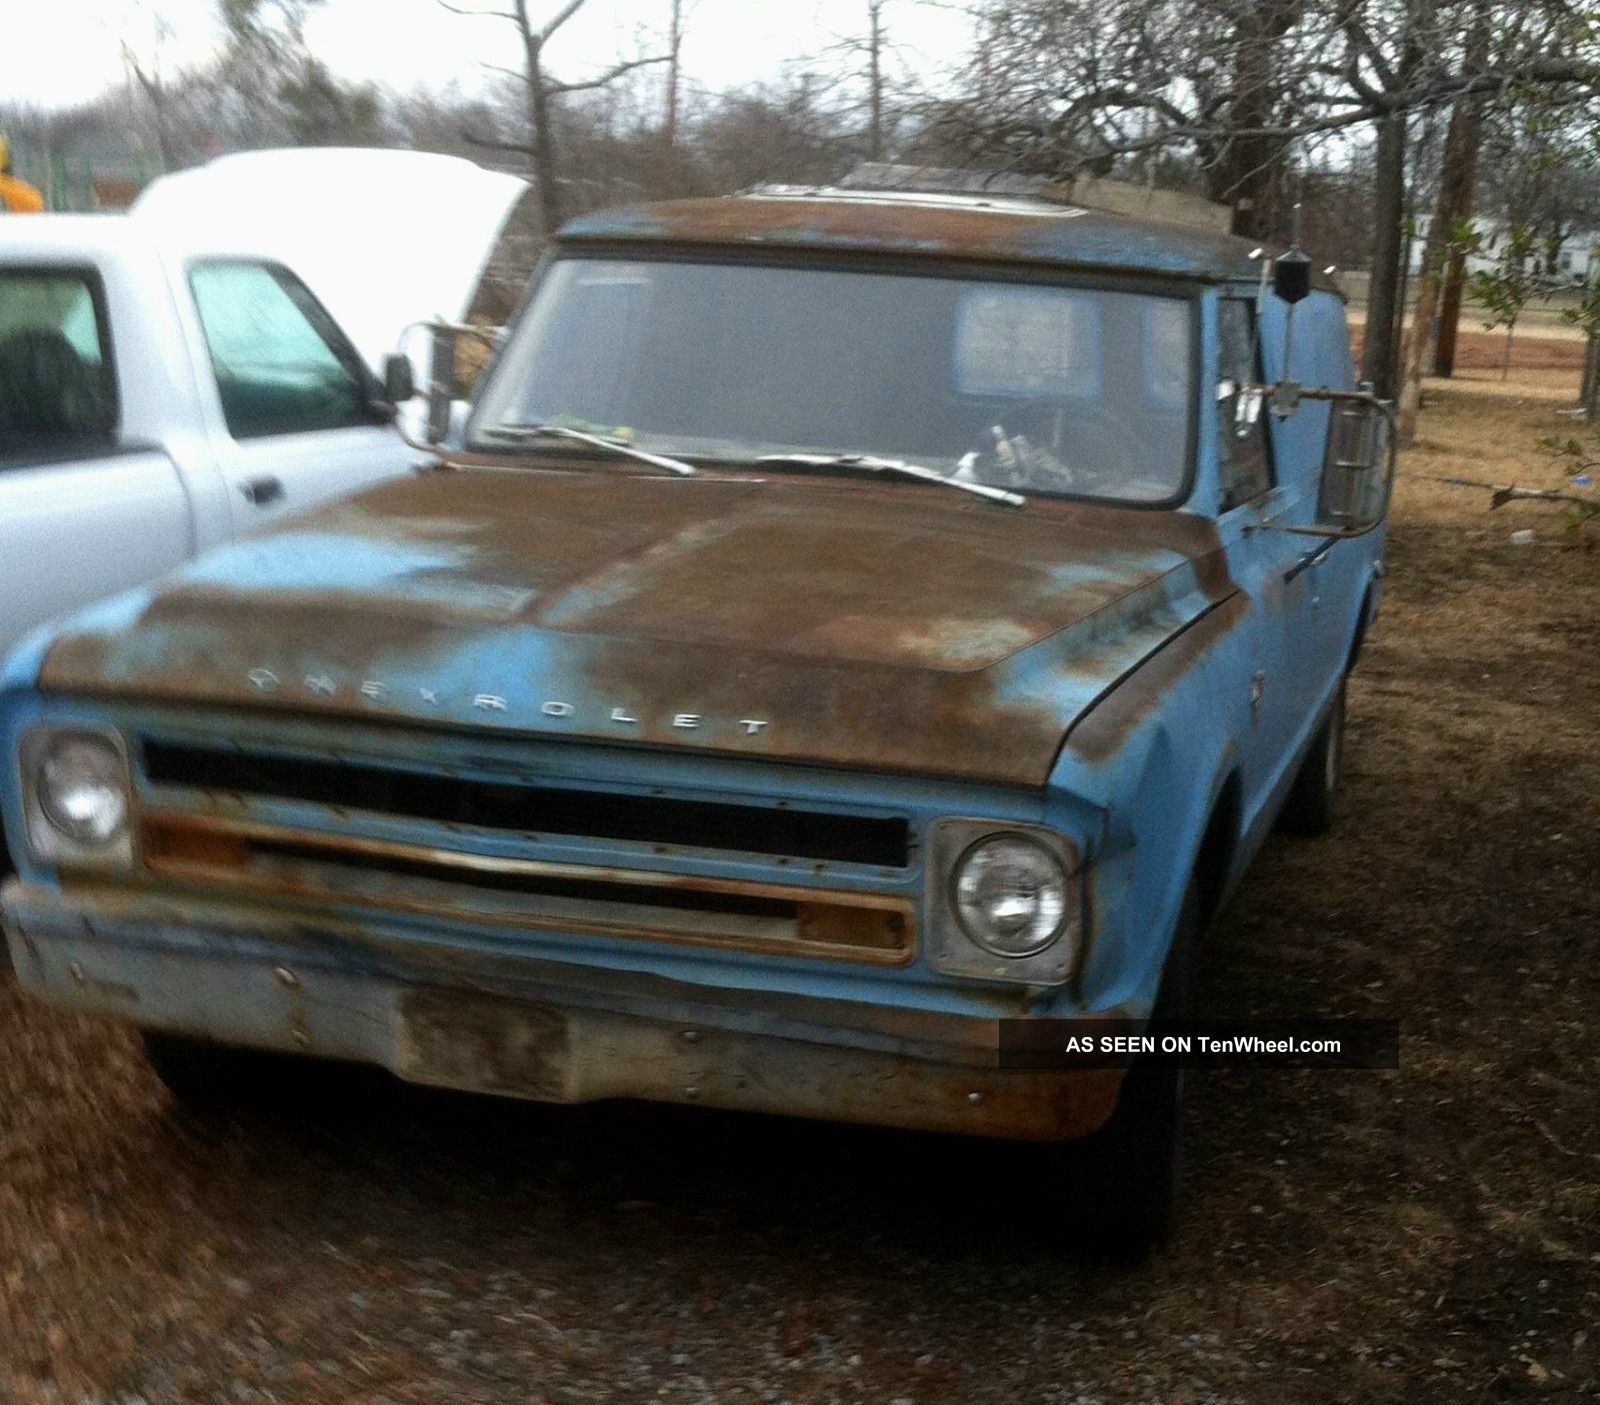 1956 FORD F 100 CUSTOM PICKUP 190030 besides 1967 Gmc 1 2 Ton Pickup furthermore 651192427339651395 together with 12312 Chevrolet Panel 1967 3 together with 1955 Chevrolet Bel Air Foose Nitrous Se F300 Wheels Rims 2386. on 1967 chevy truck